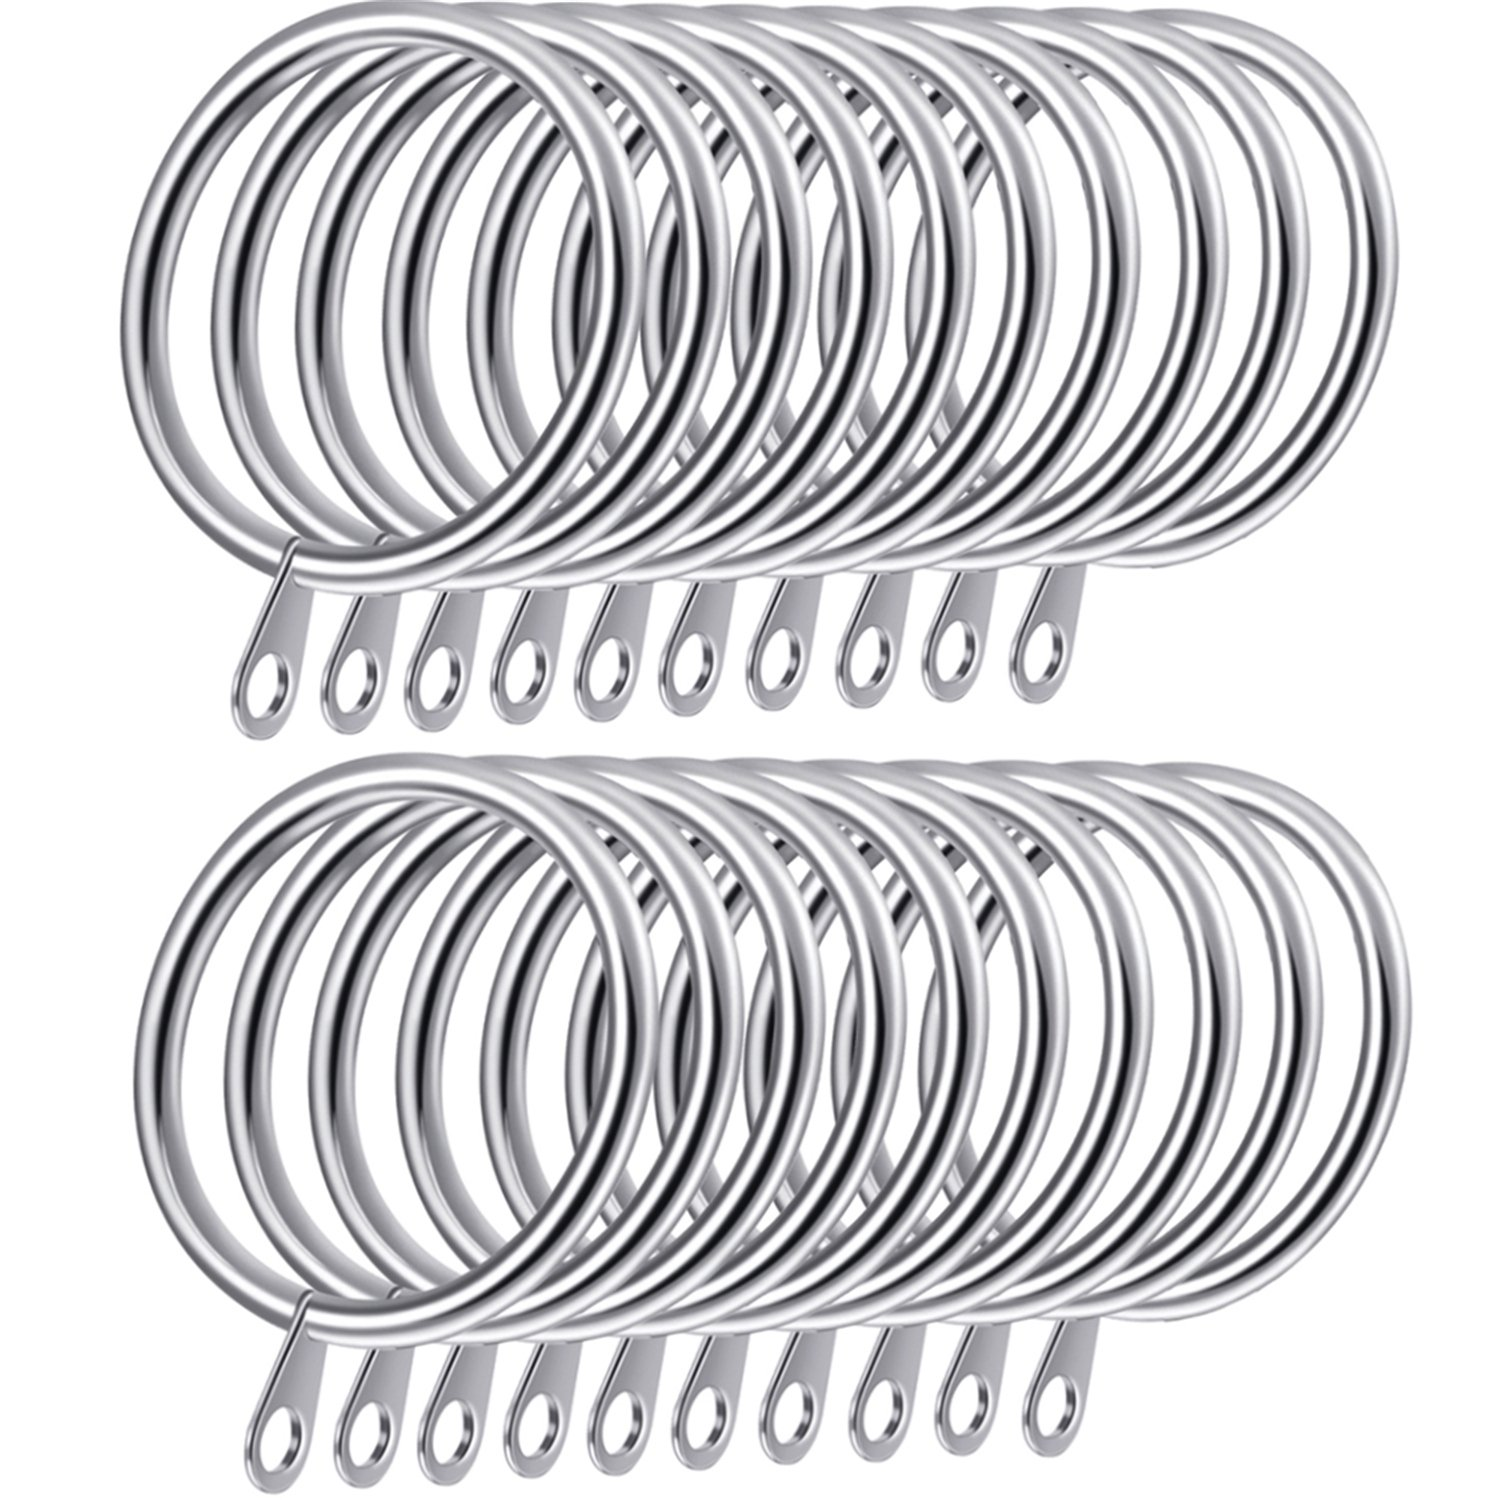 30 mm Internal Diameter Silver Shappy 20 Pack Metal Curtain Rings Hanging Rings for Curtains and Rods